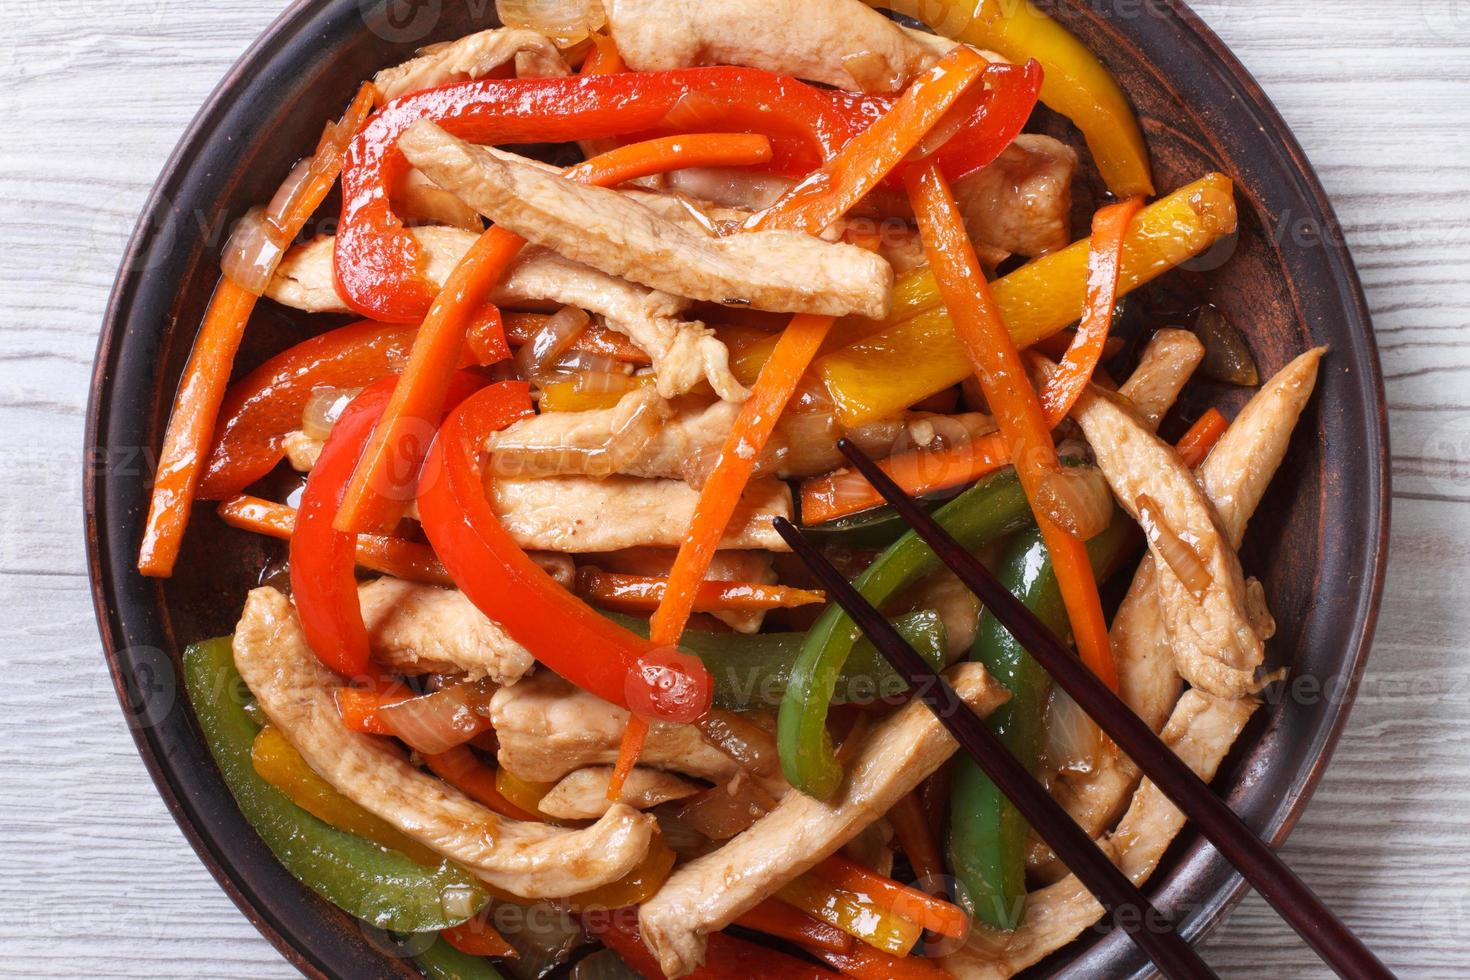 chicken with vegetables close-up on a plate. top view photo